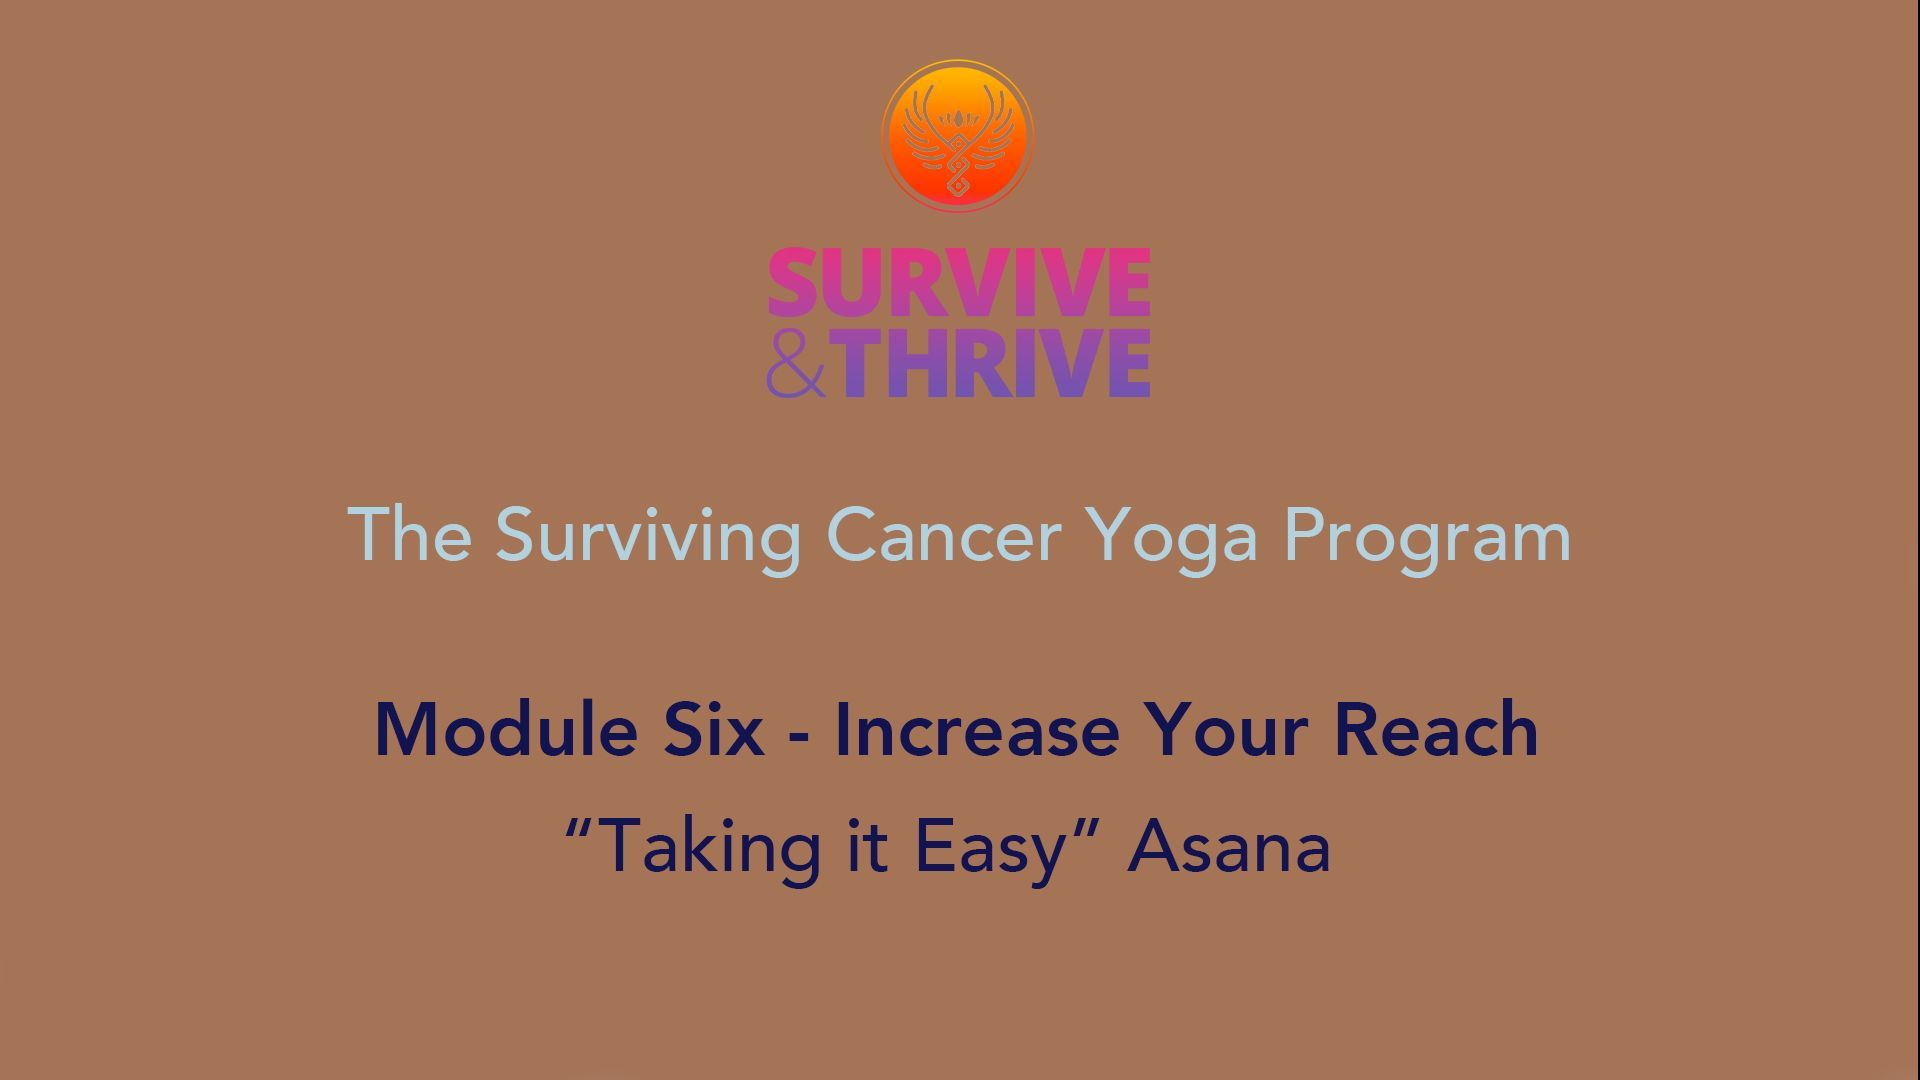 SURVIVE AND THRIVE | MODULE 6 - INCREASE YOUR REACH | TAKE IT EASY ASANA